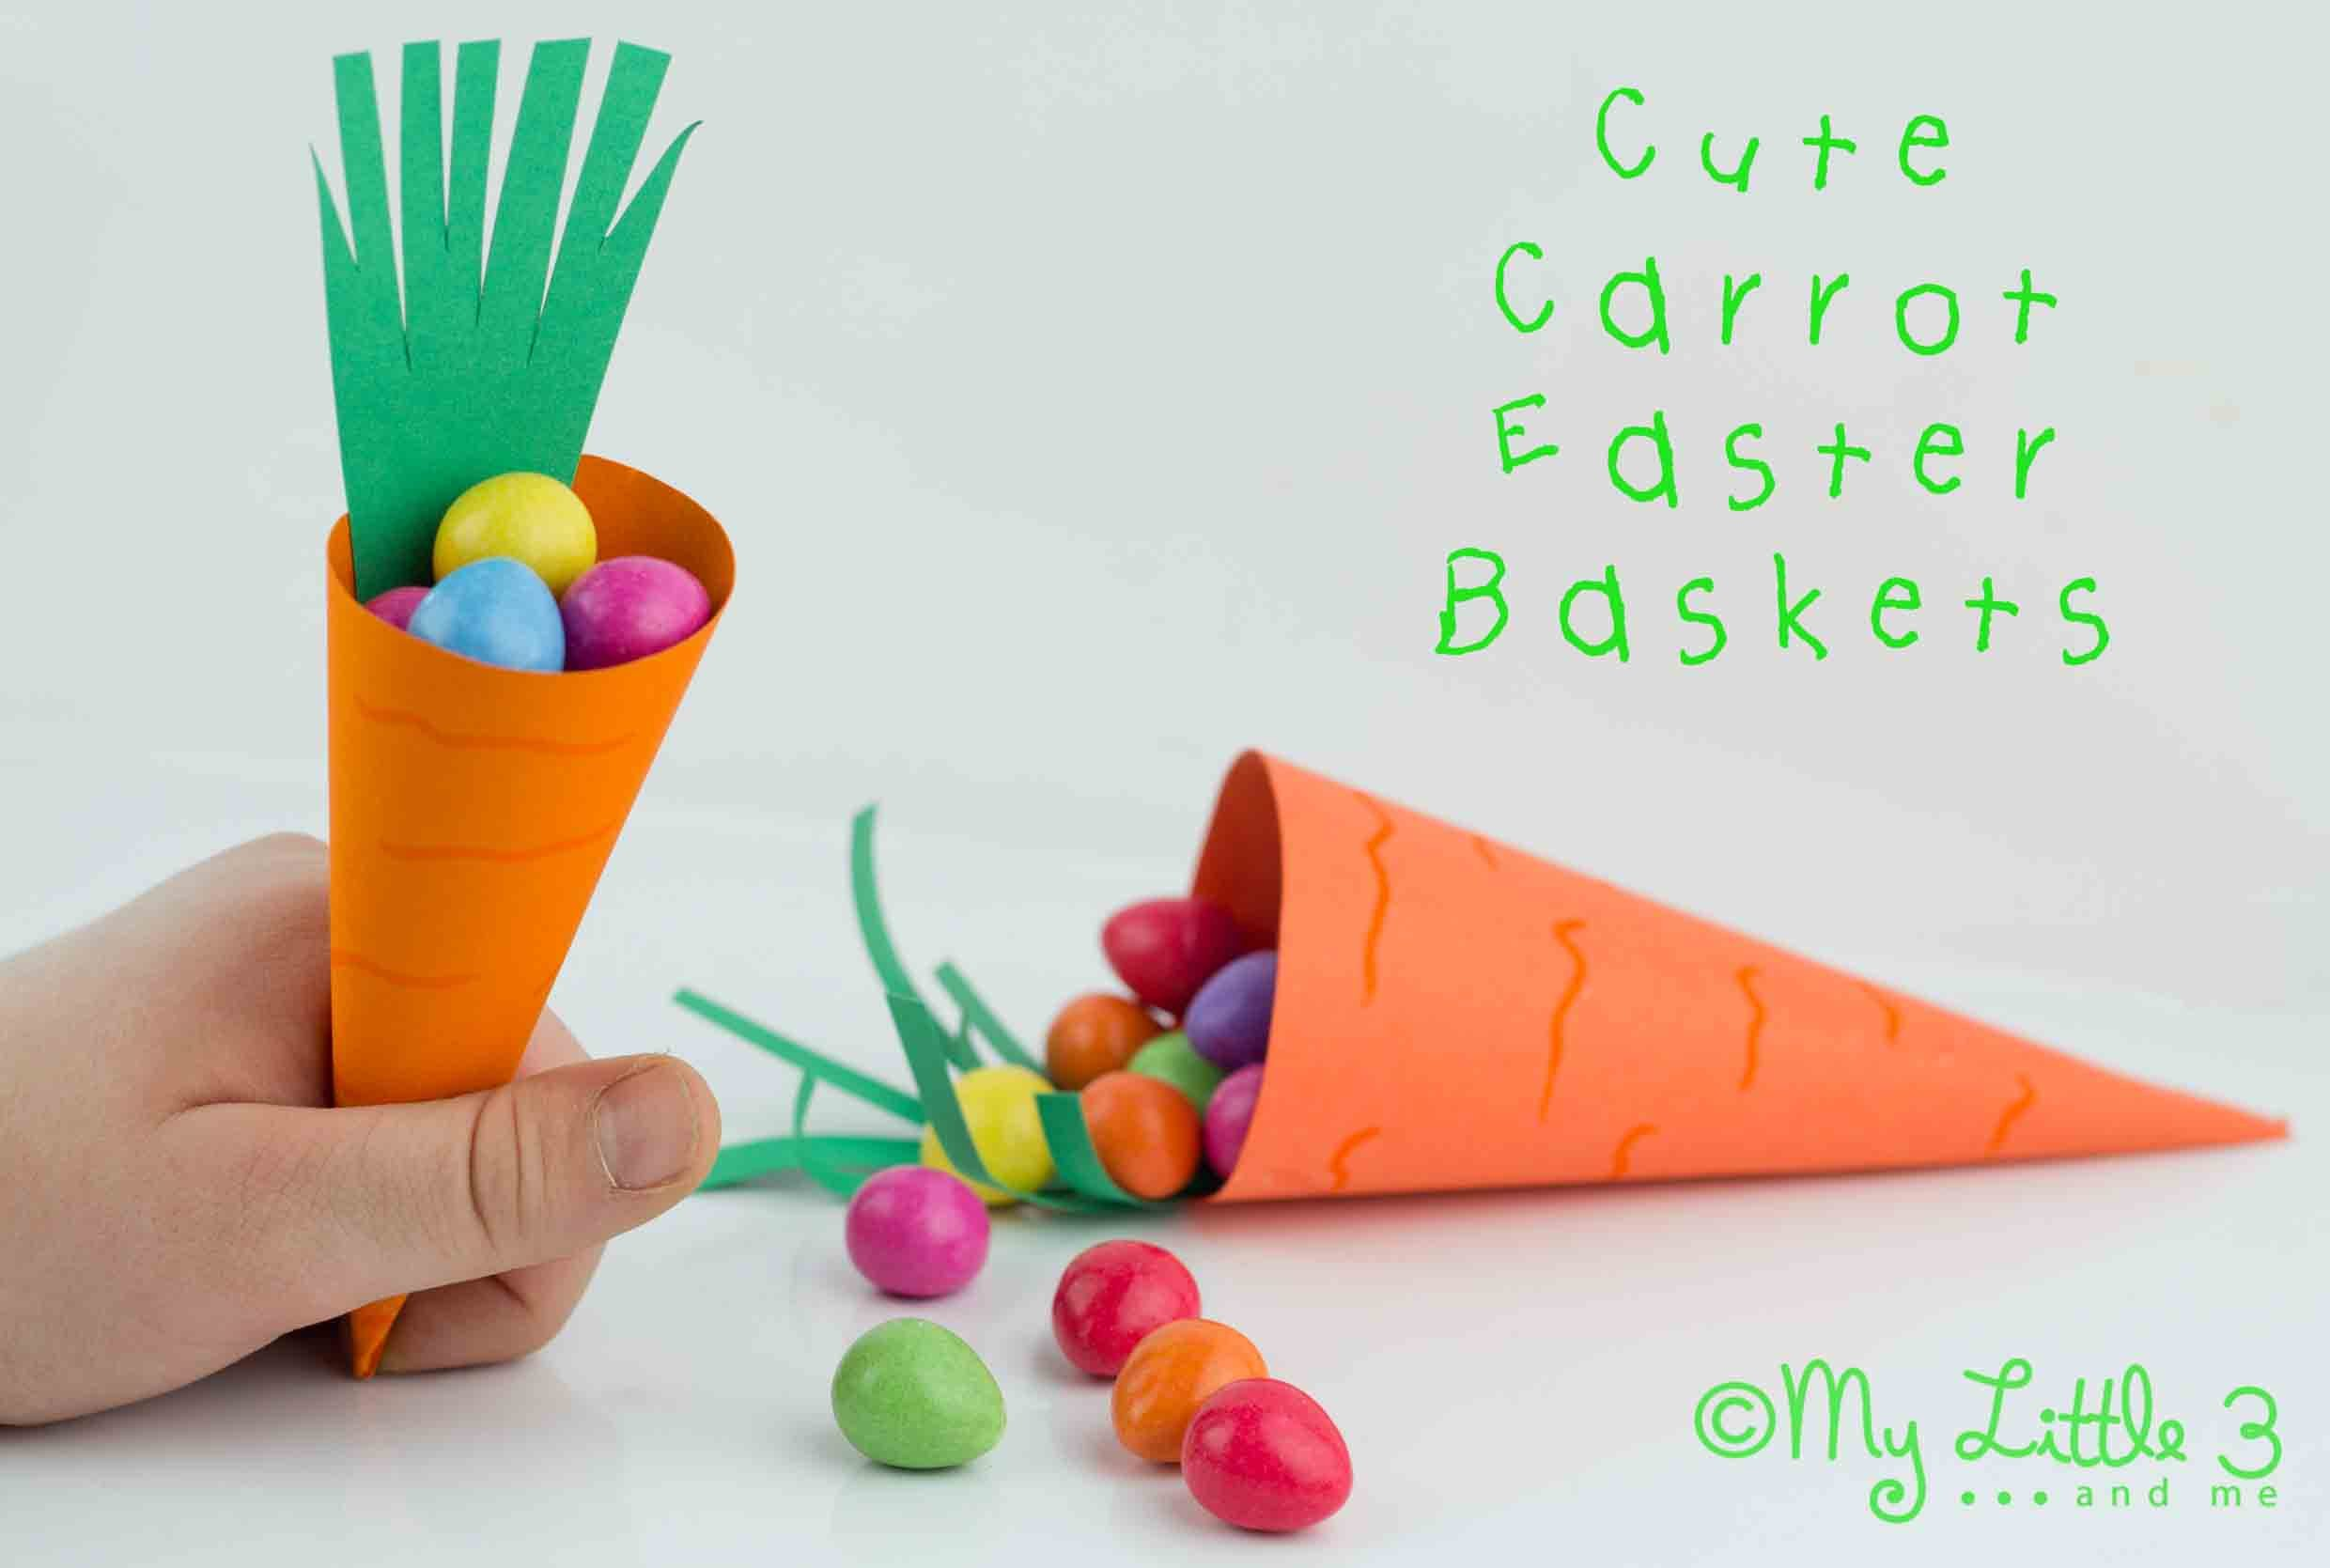 Make A Carrot Easter Basket - Free Printable - My Little 3 and Me